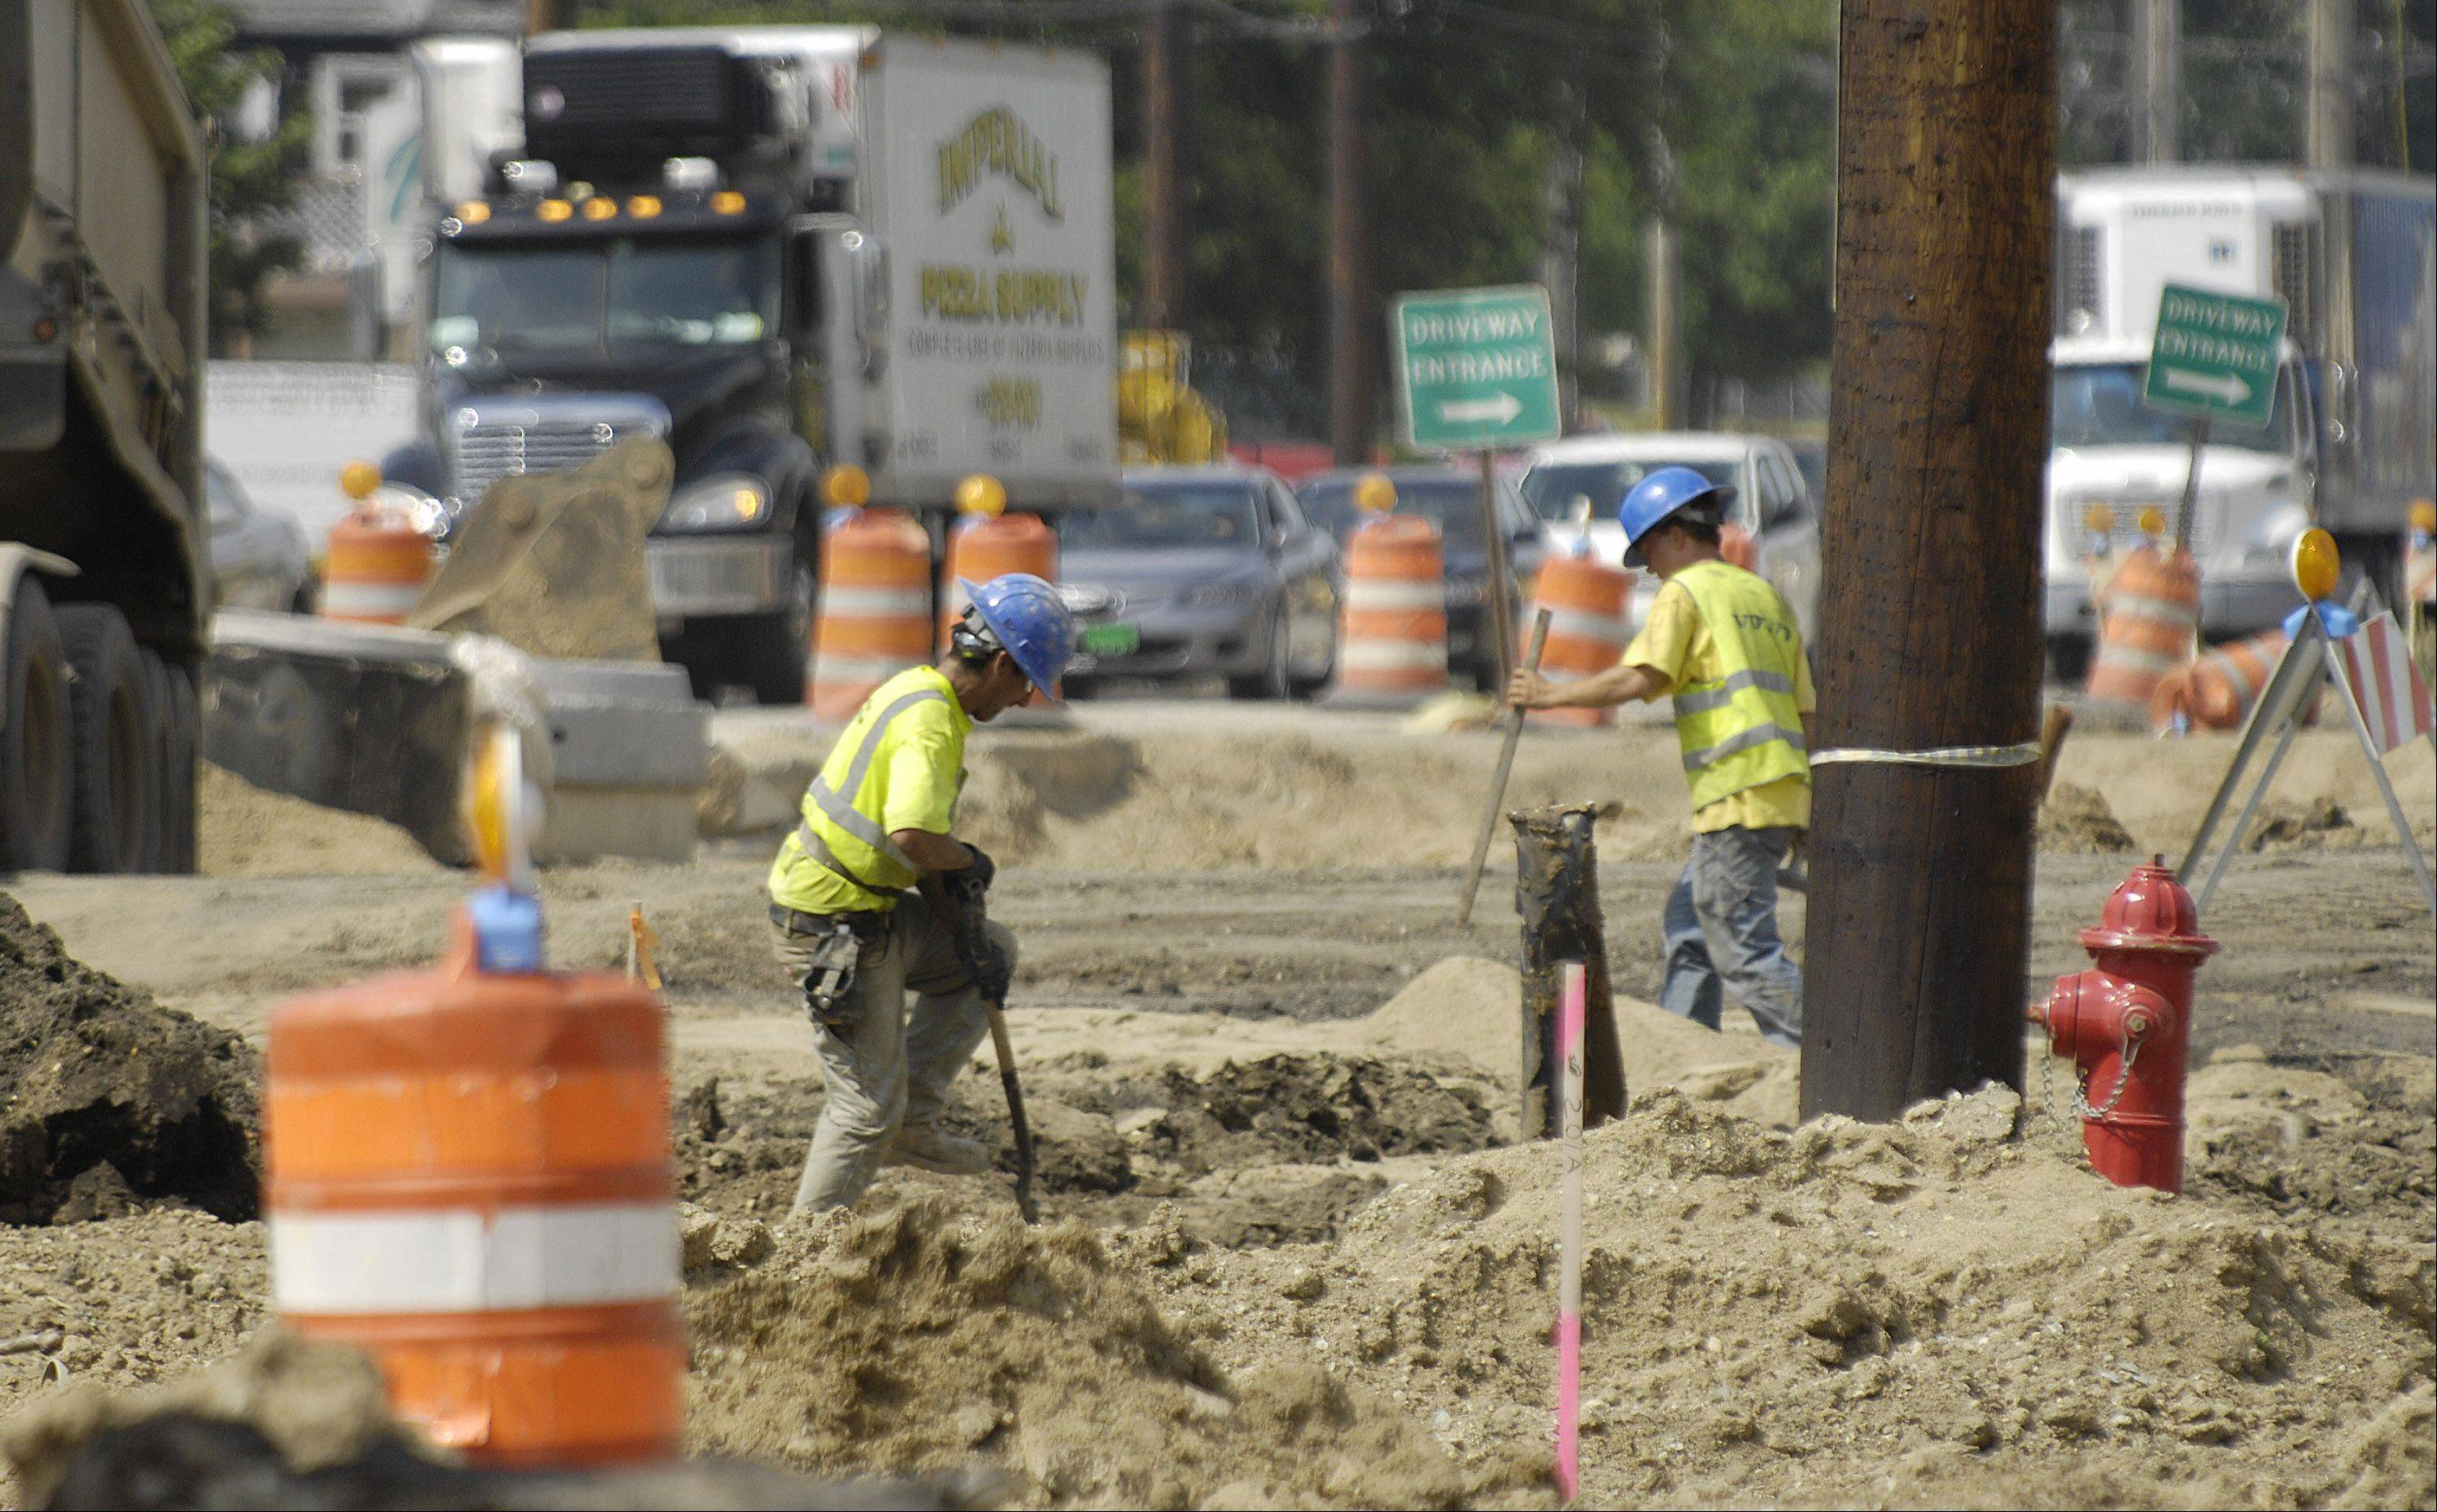 Construction workers wear heavy clothing as they continue work on Route 47 in Huntley in the heat Monday.